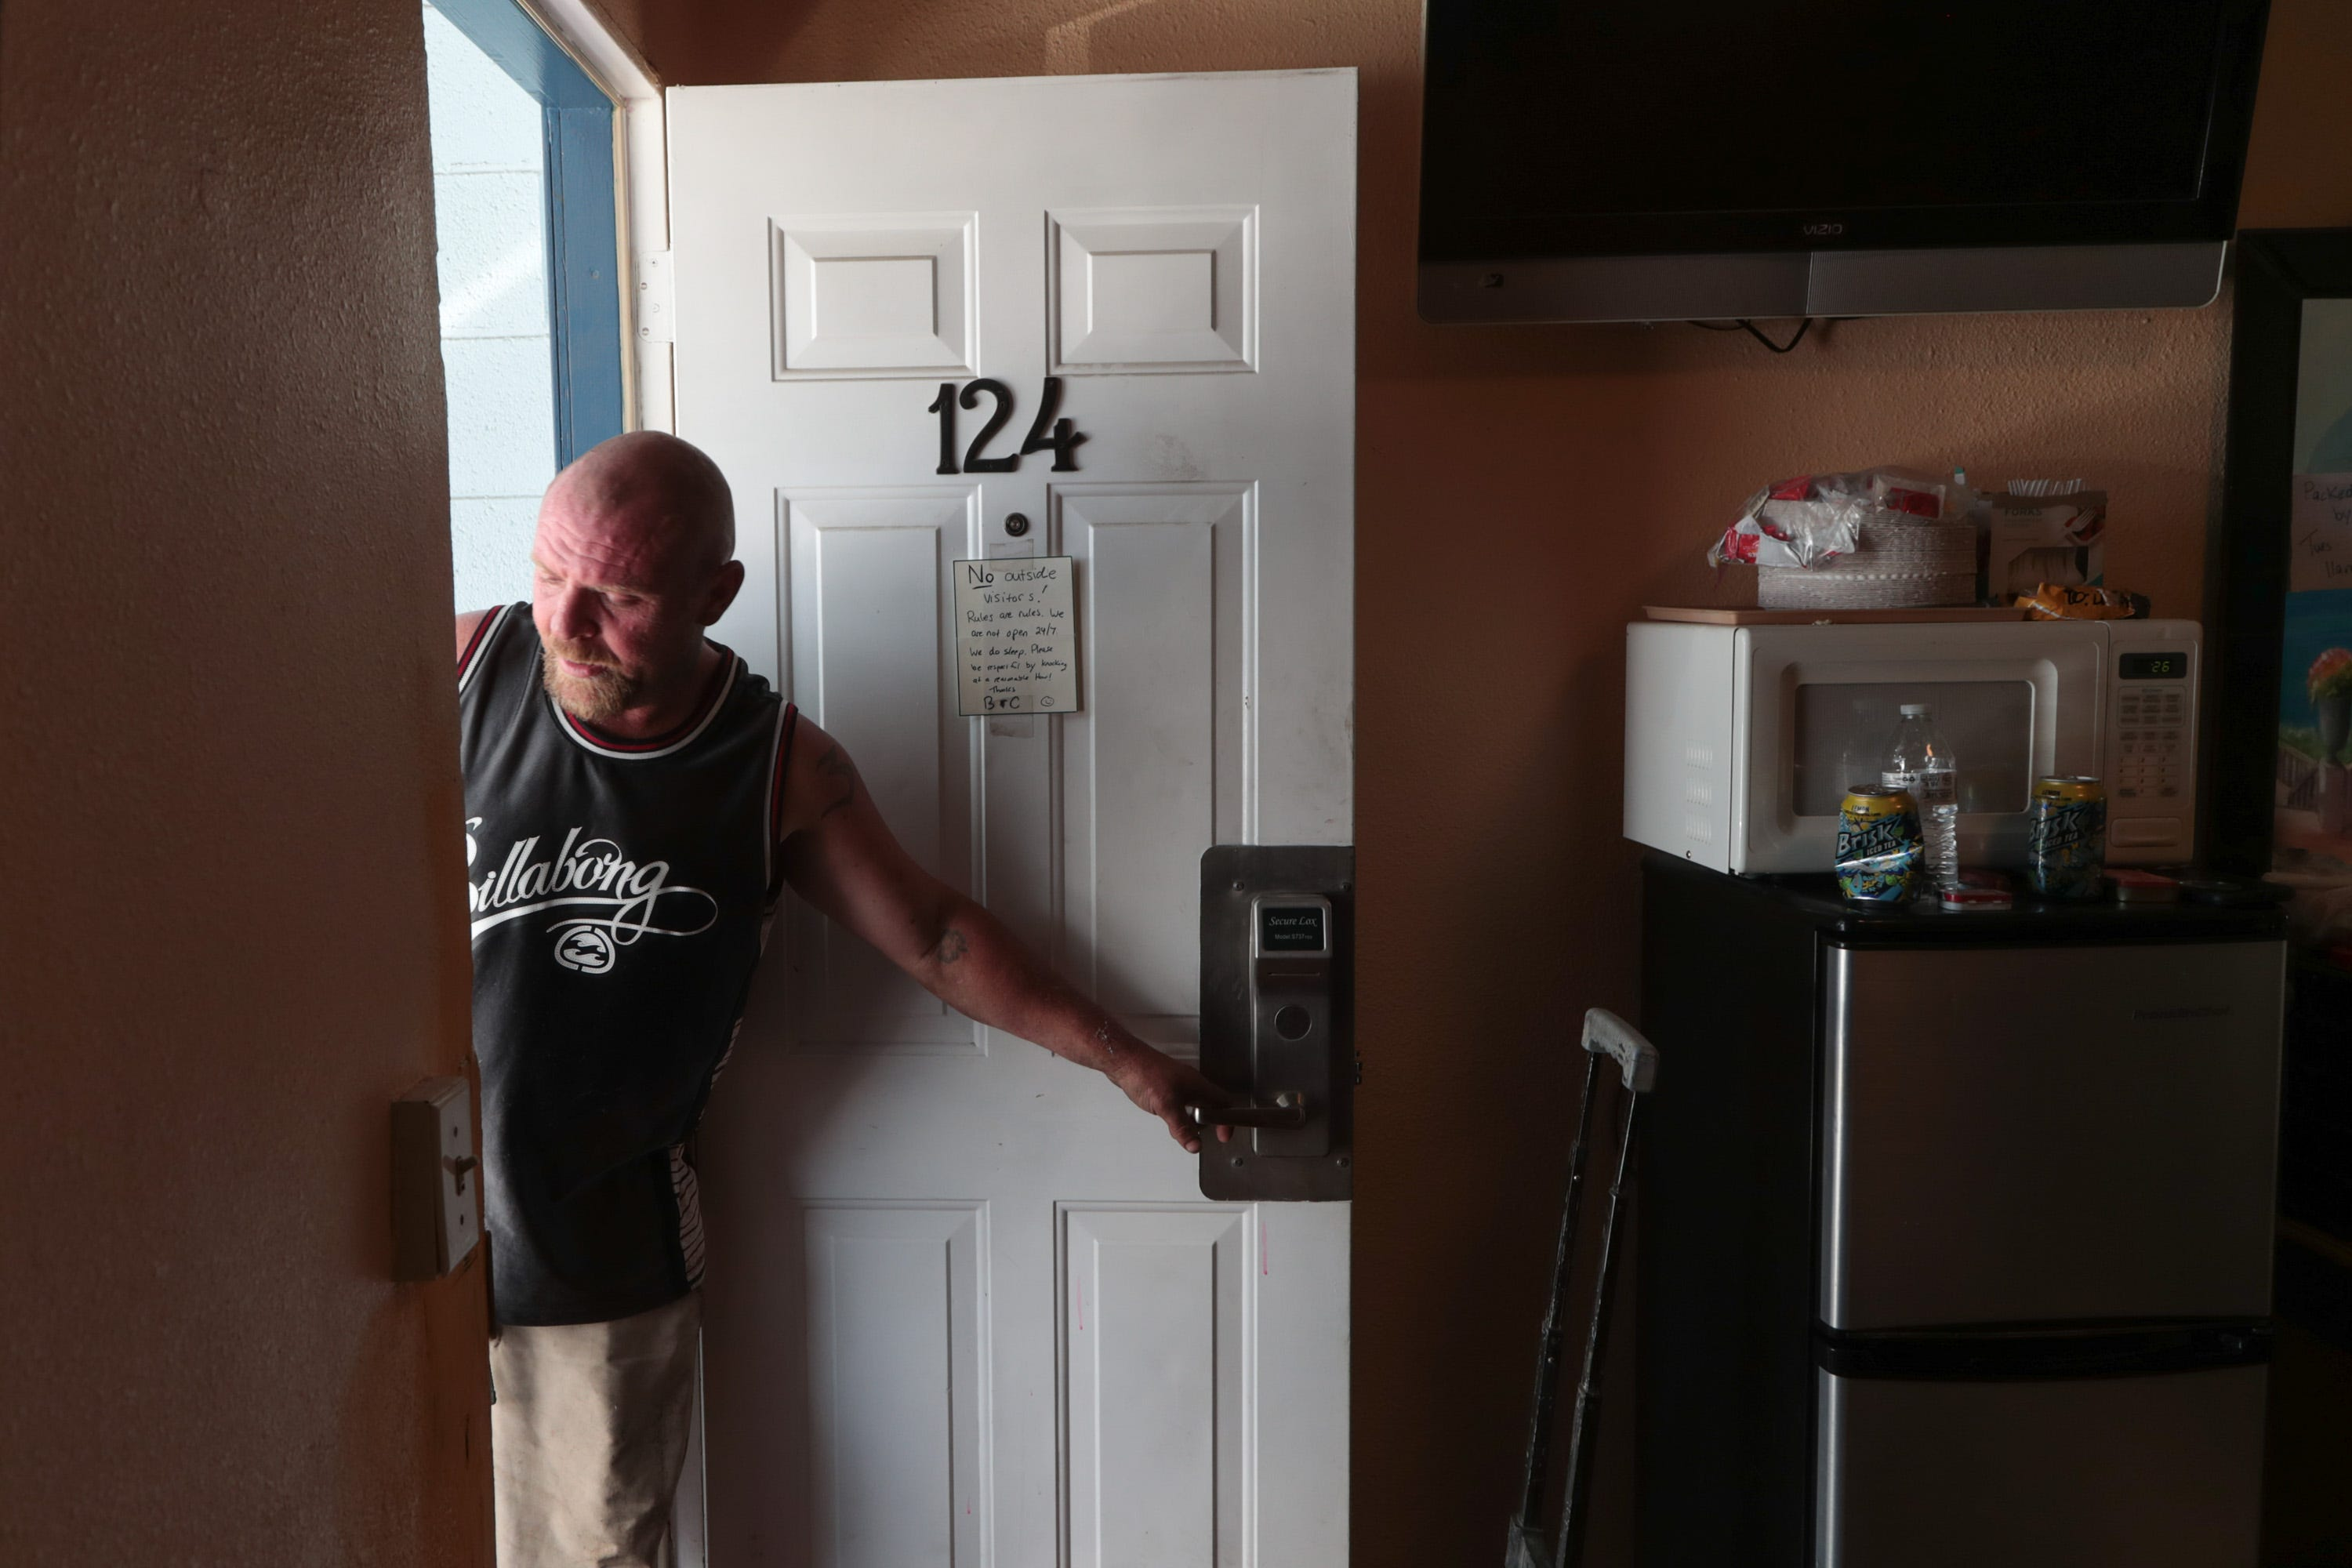 Bryan Hensley leaves the room he was sharing with his girlfriend at City Center Motel in Indio on May 29, 2018. Hensley and nearly 40 others were housed at the hotel after being evicted from Caltrans land in Coachella.